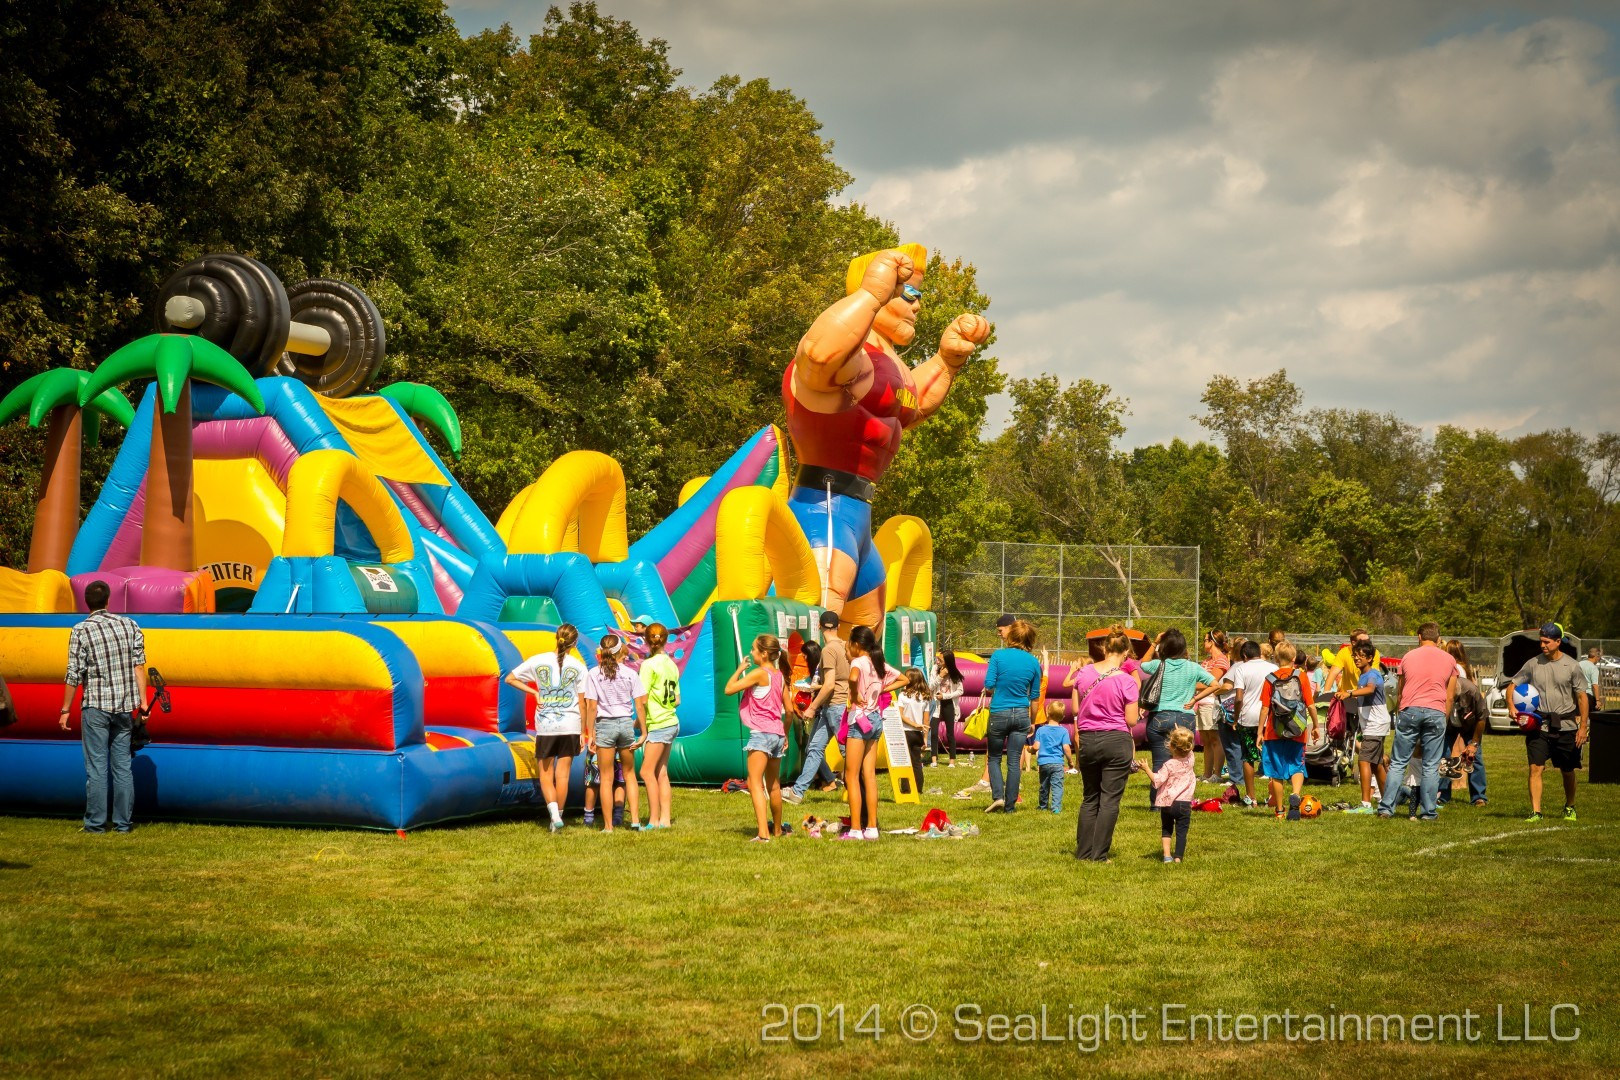 Fall Fest Pictures at Bedminster Fall Fest